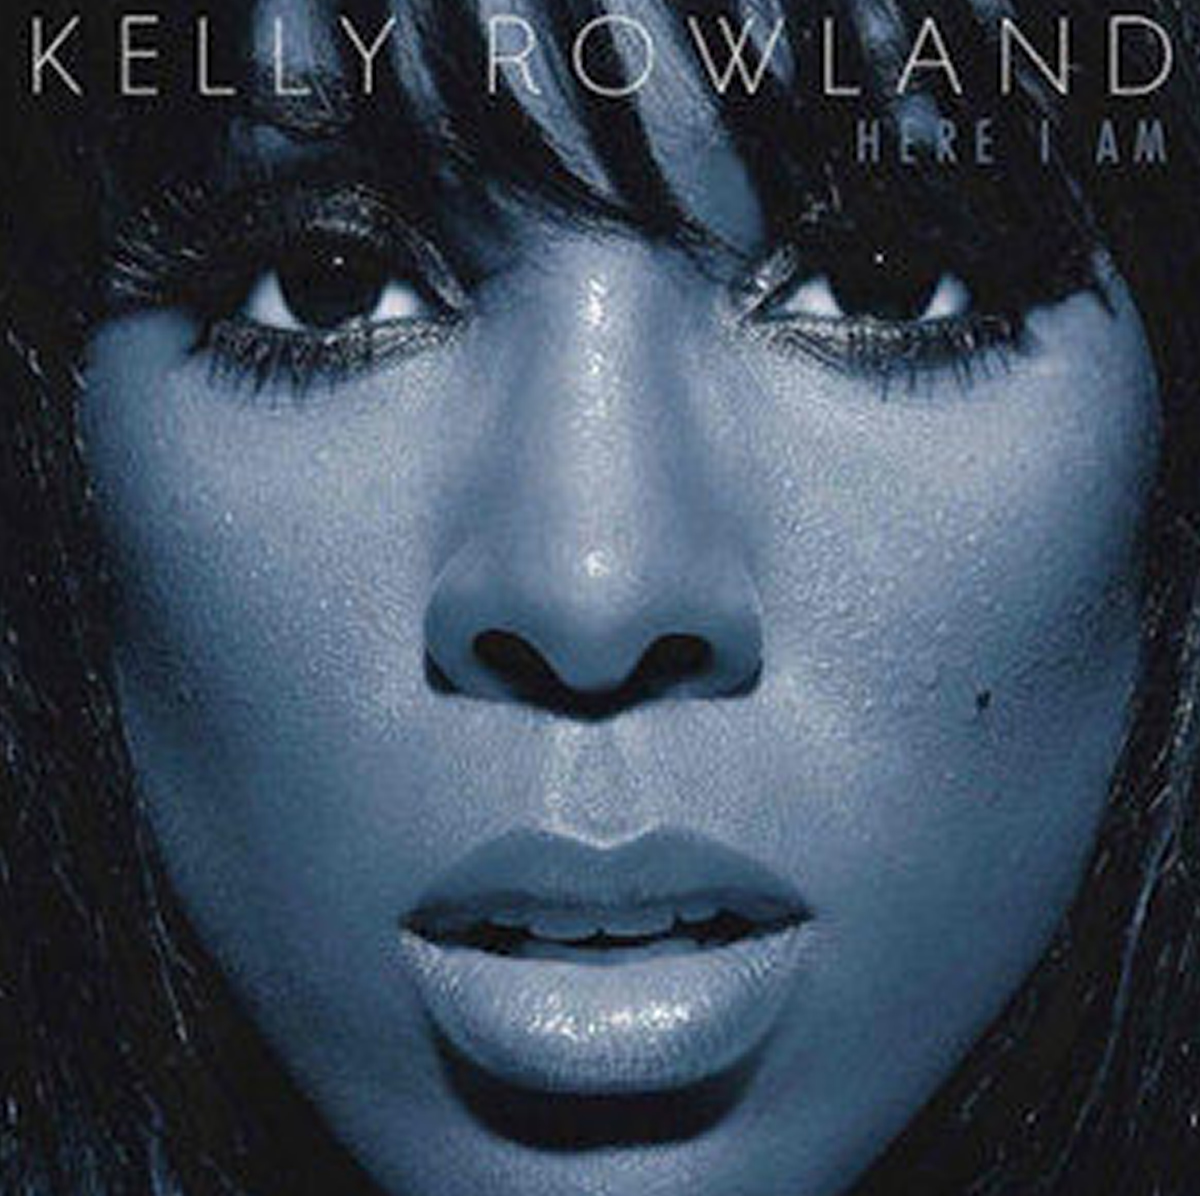 Kelly_Rowland_-_Here_I_Am